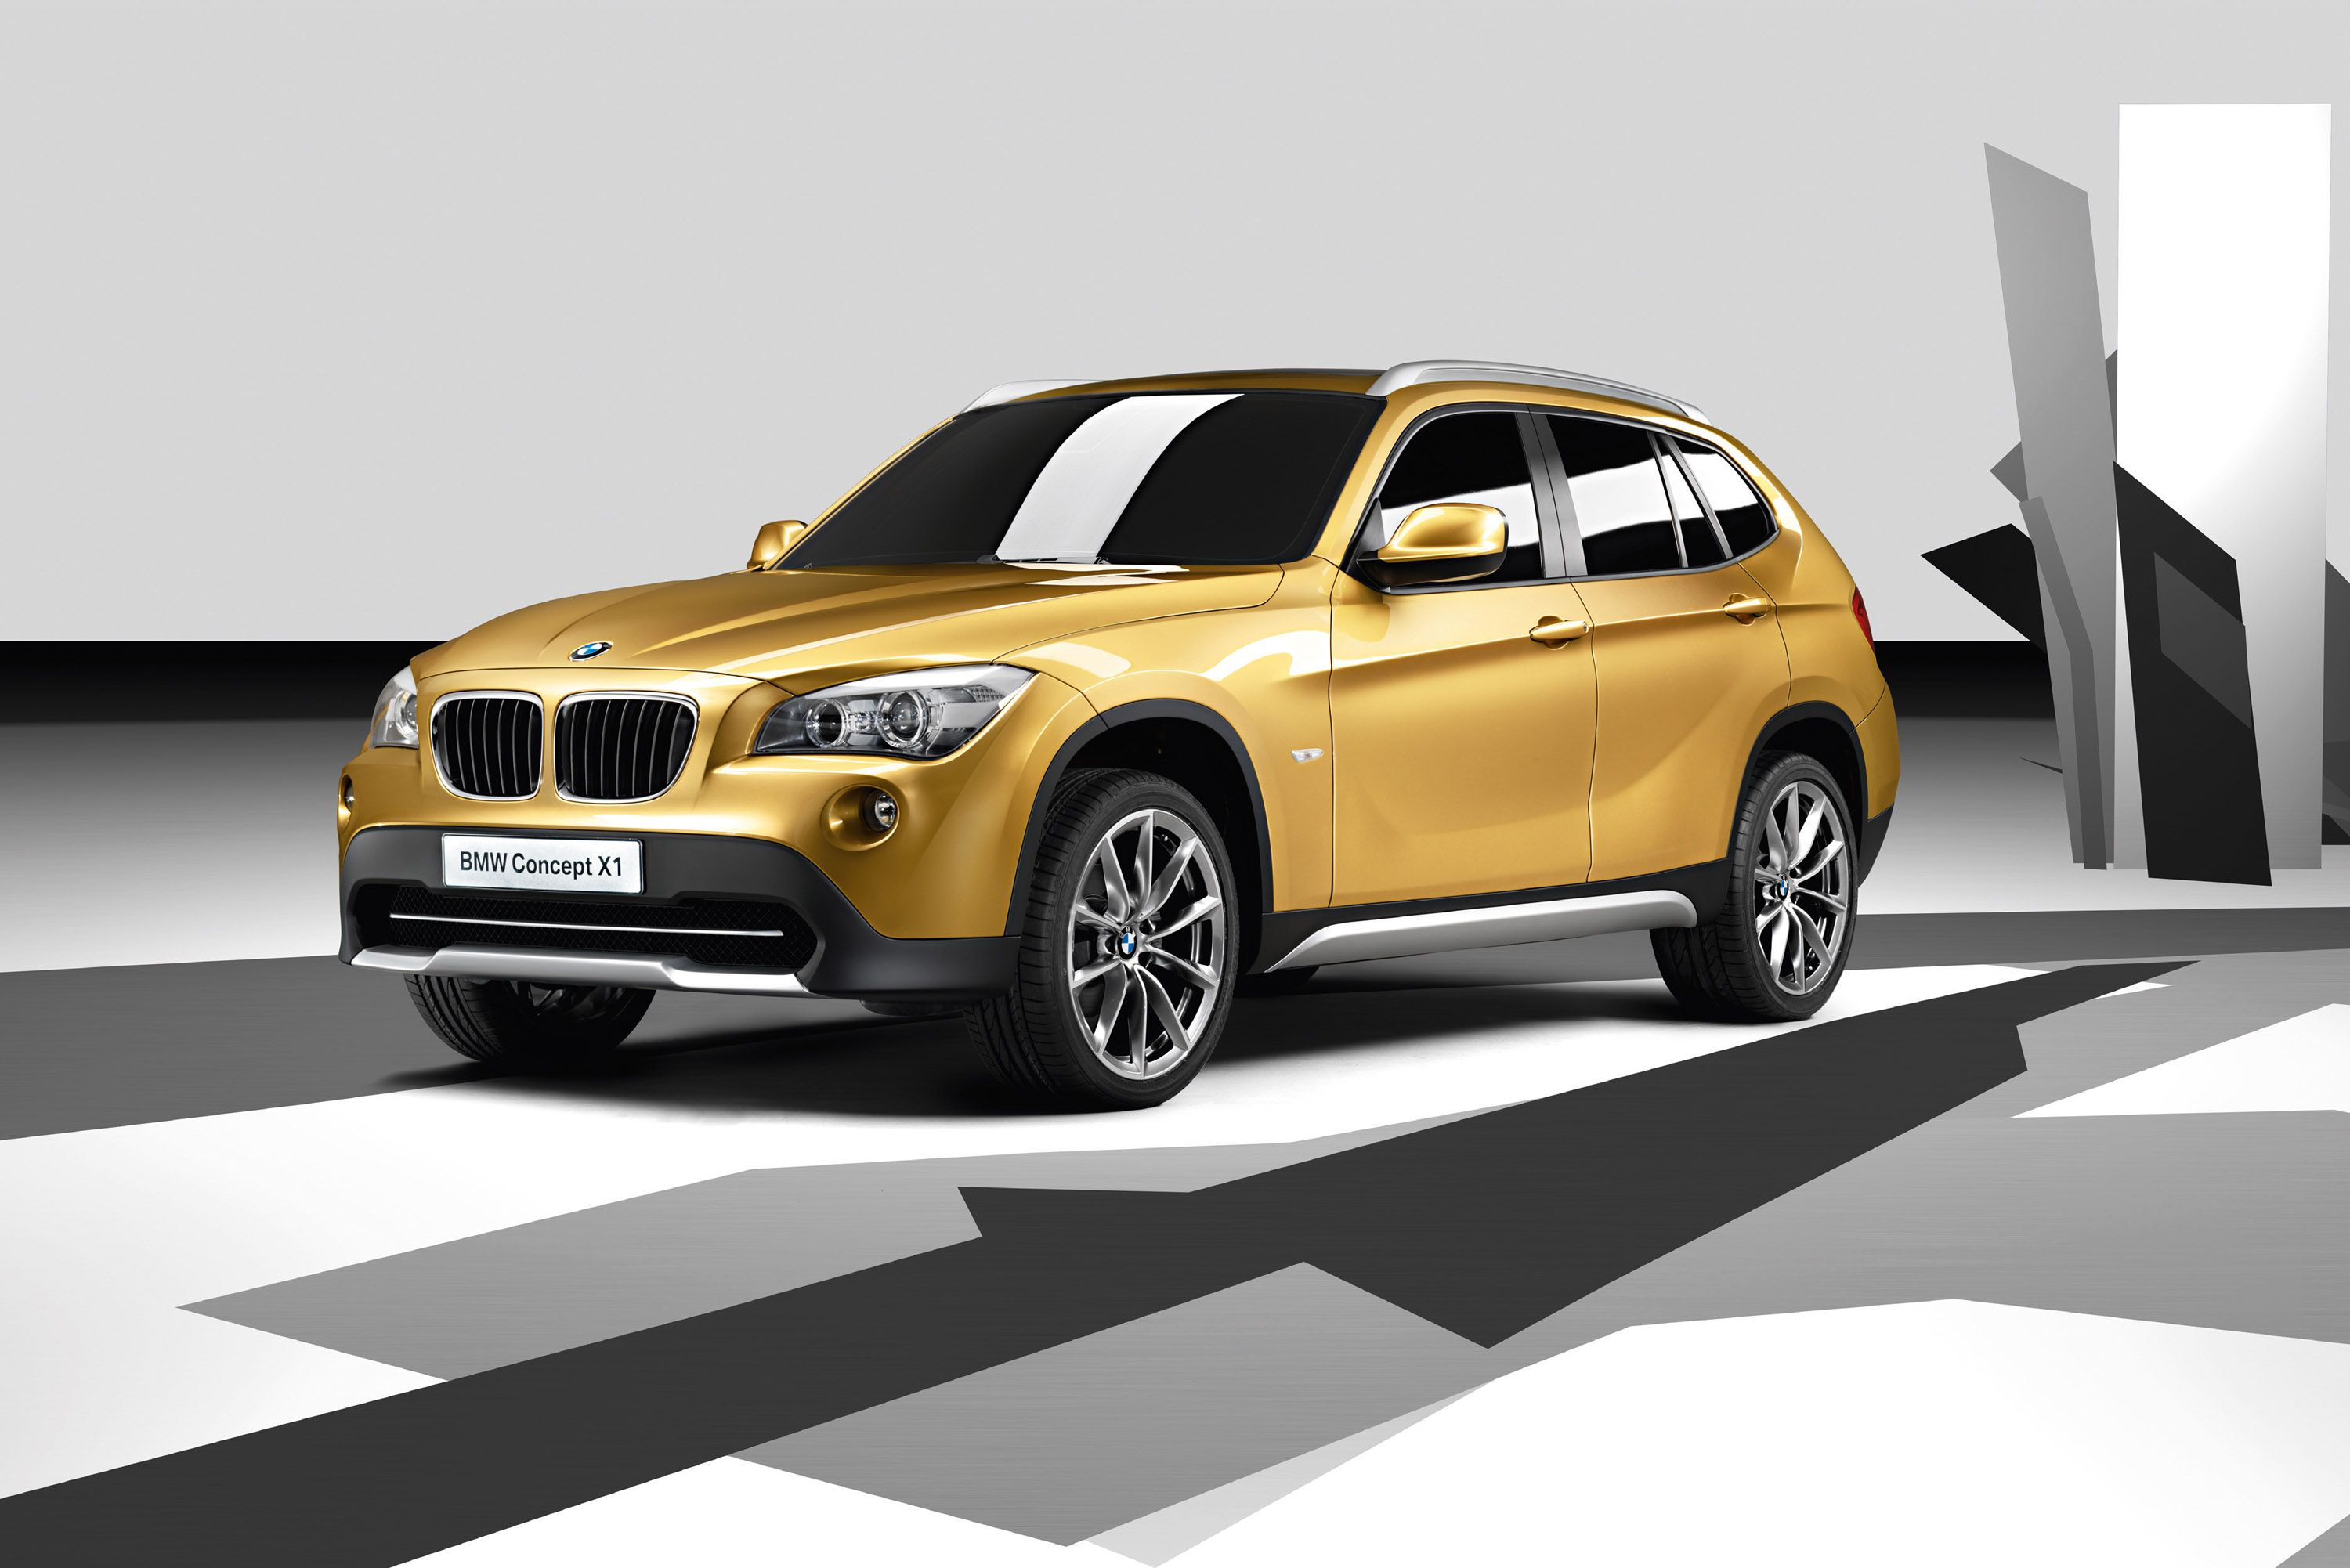 BMW X1 Concept I Absolutely Love This Color Gold And The Whole